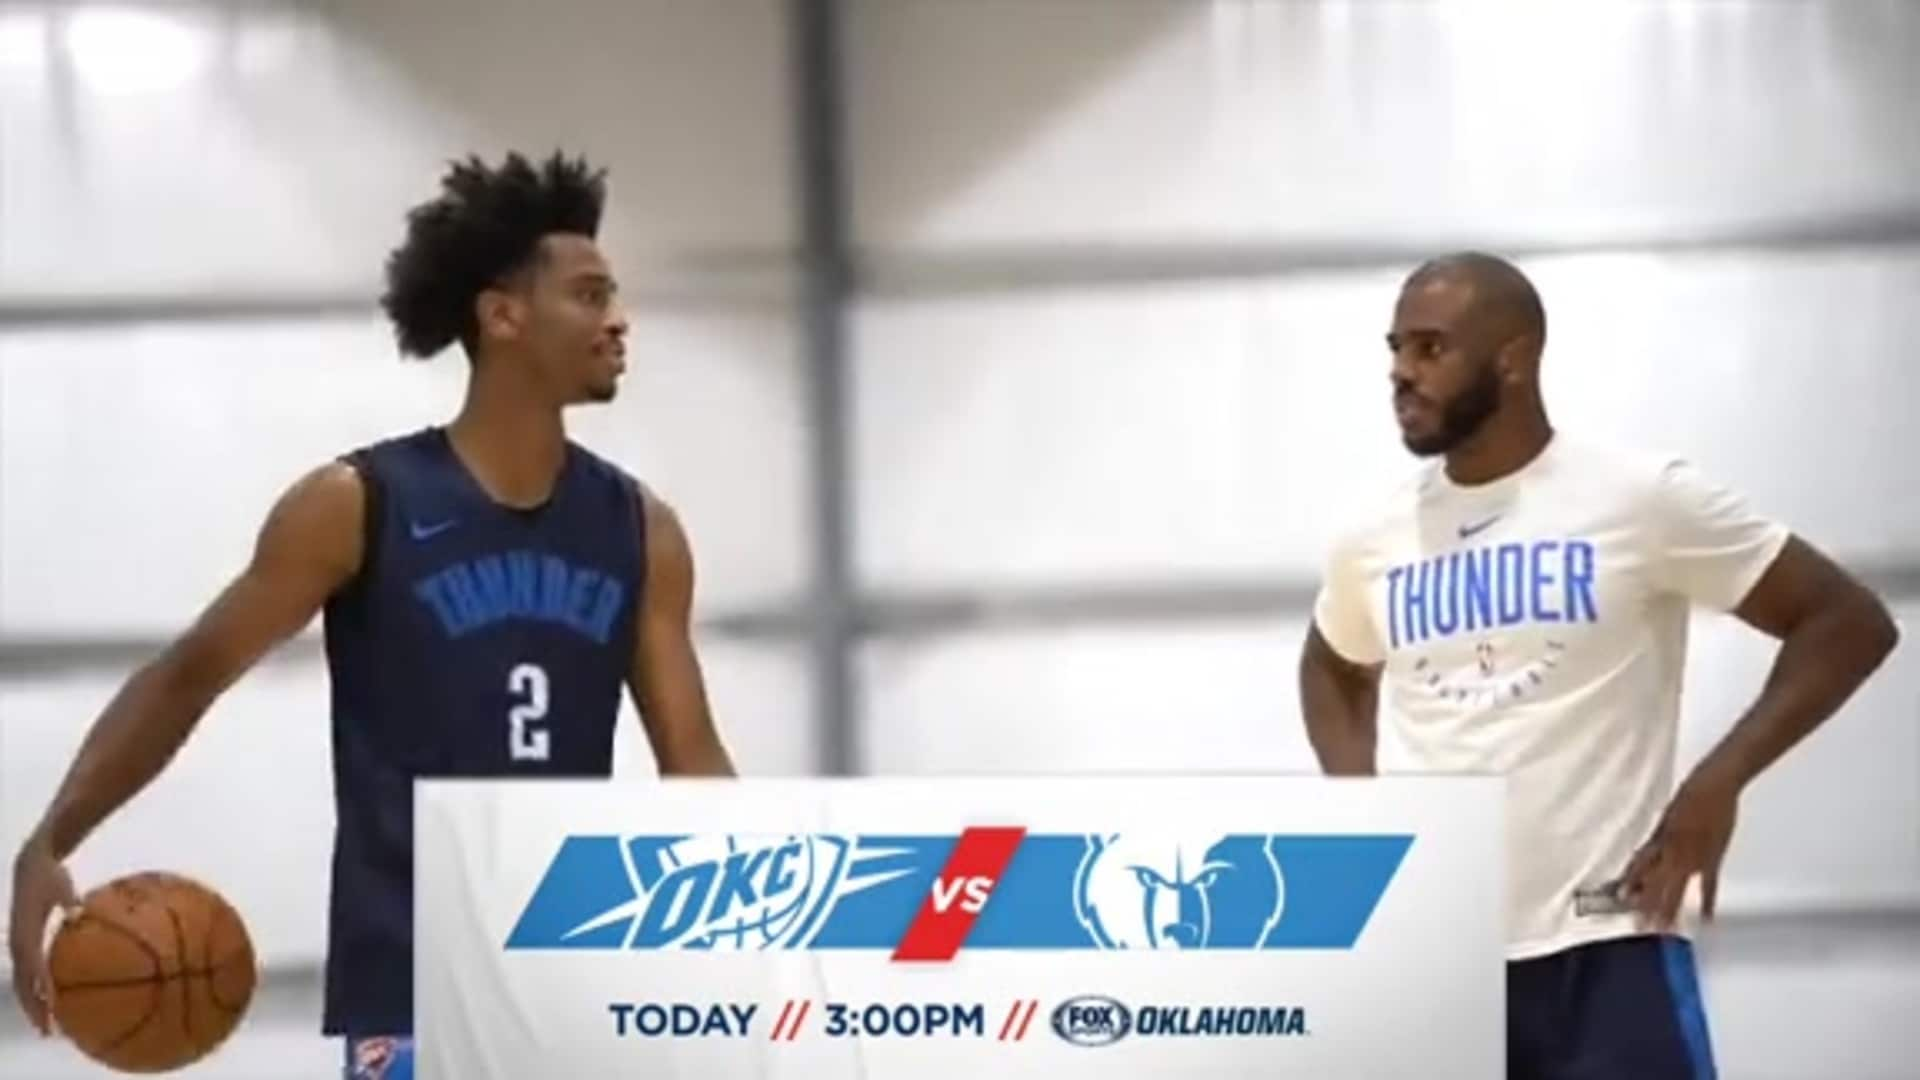 Game Day Report - 8/7 vs. Grizzlies